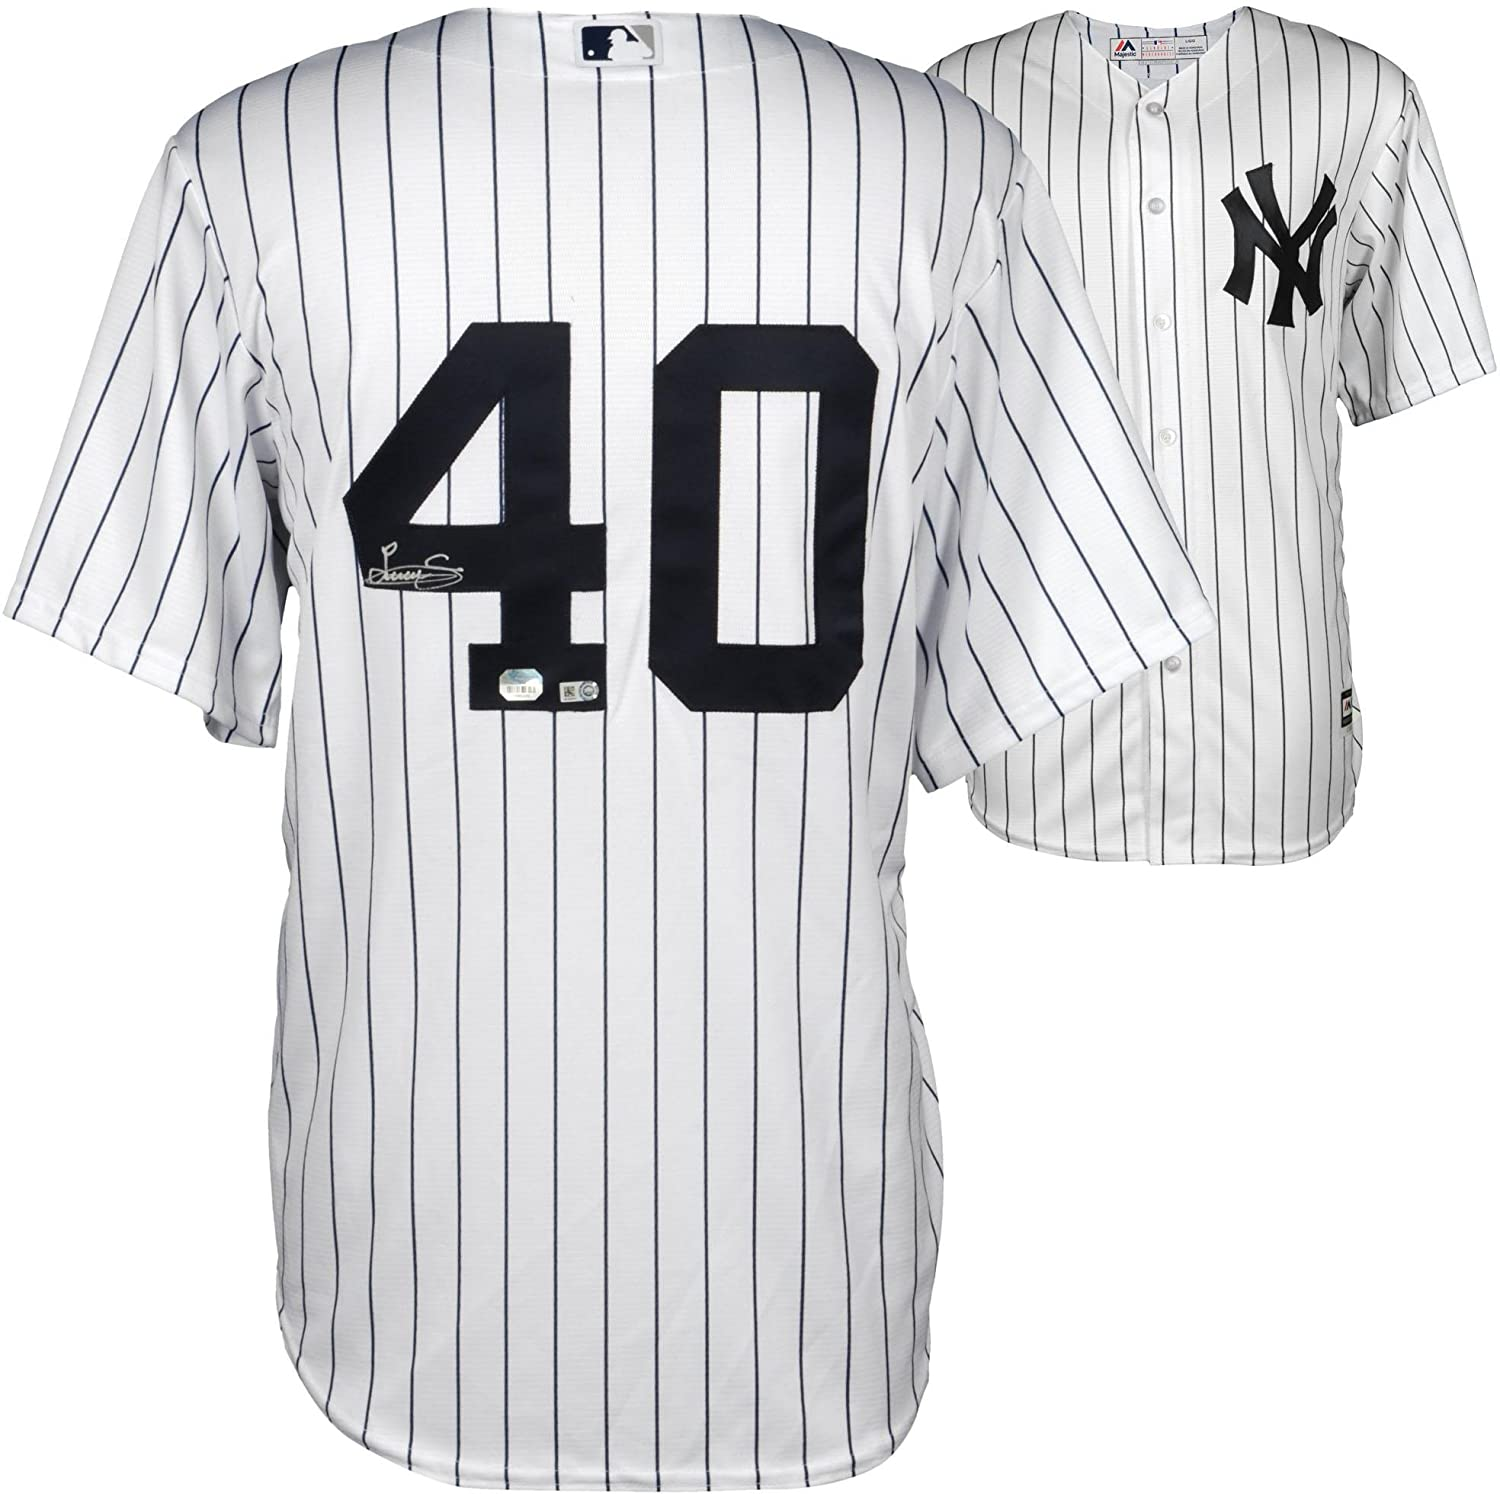 Luis Severino New York Yankees Autographed White Replica Jersey - Fanatics  Authentic Certified - Autographed MLB Jerseys at Amazon s Sports  Collectibles ... 36b93aada4e